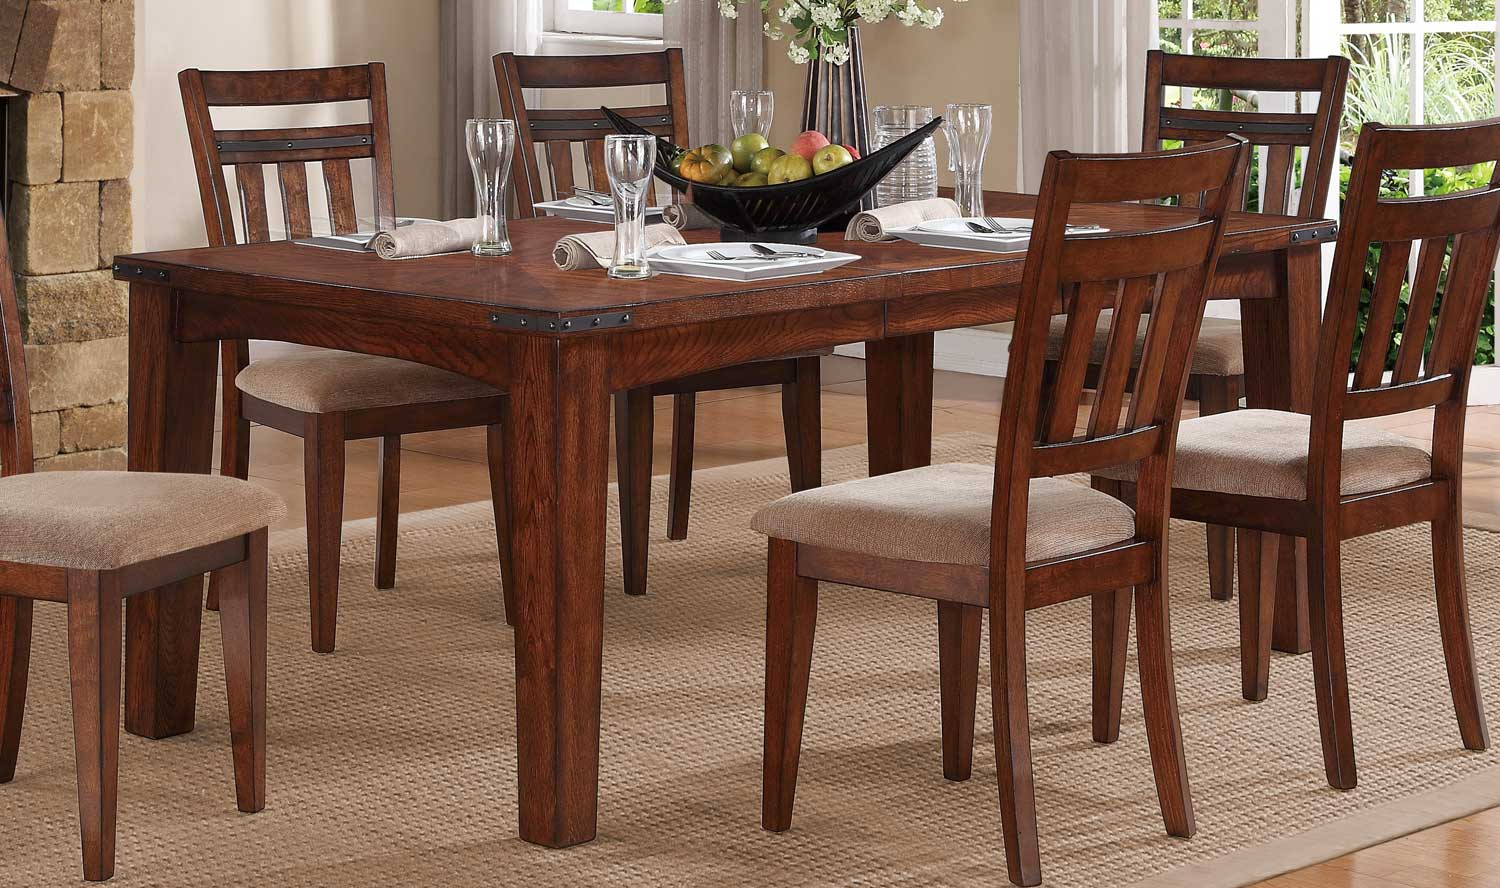 Homelegance Oldsmar Dining Table - Dark Oak